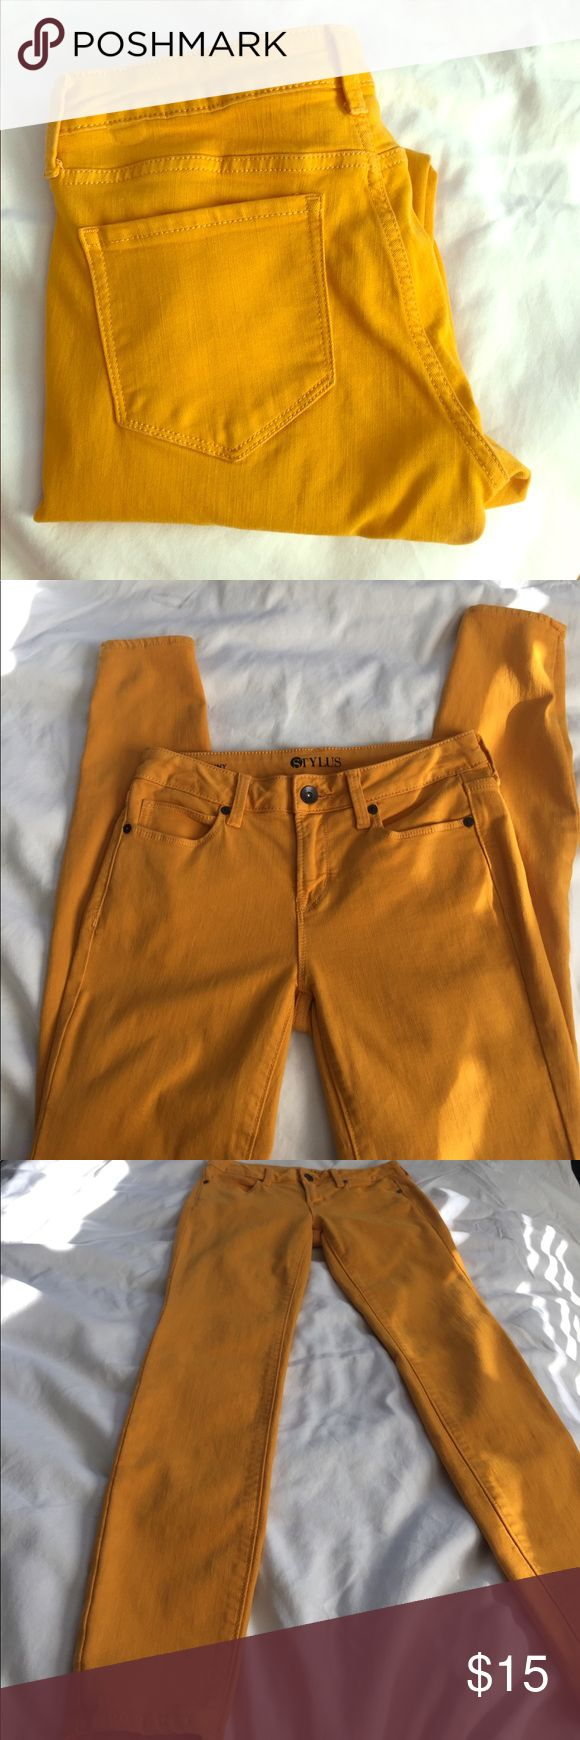 Stylus NWOT Mustard Jeans Never worn! Mint condition. Size 26/2 stylus Jeans Skinny